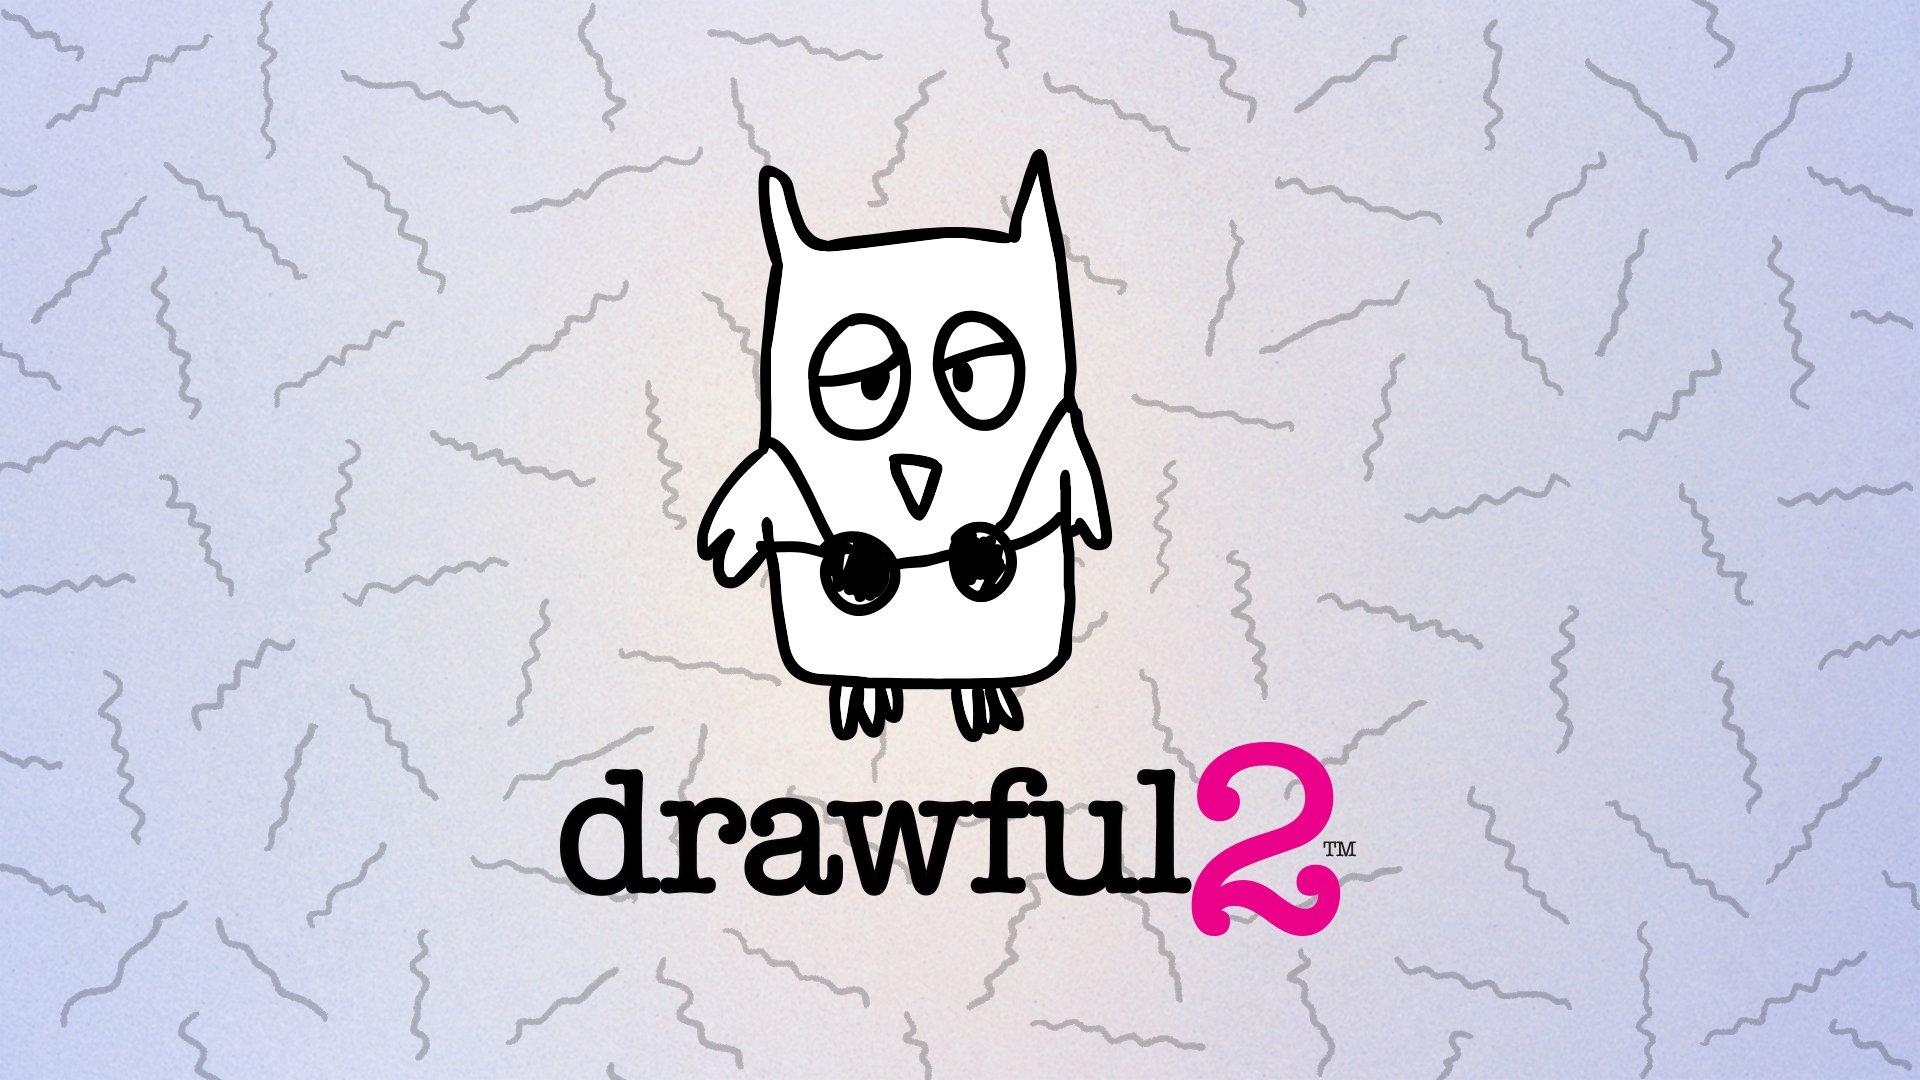 Drawful 2 Nintendo Switch Digital Code Video Games Overcooked English Pal Image Unavailable